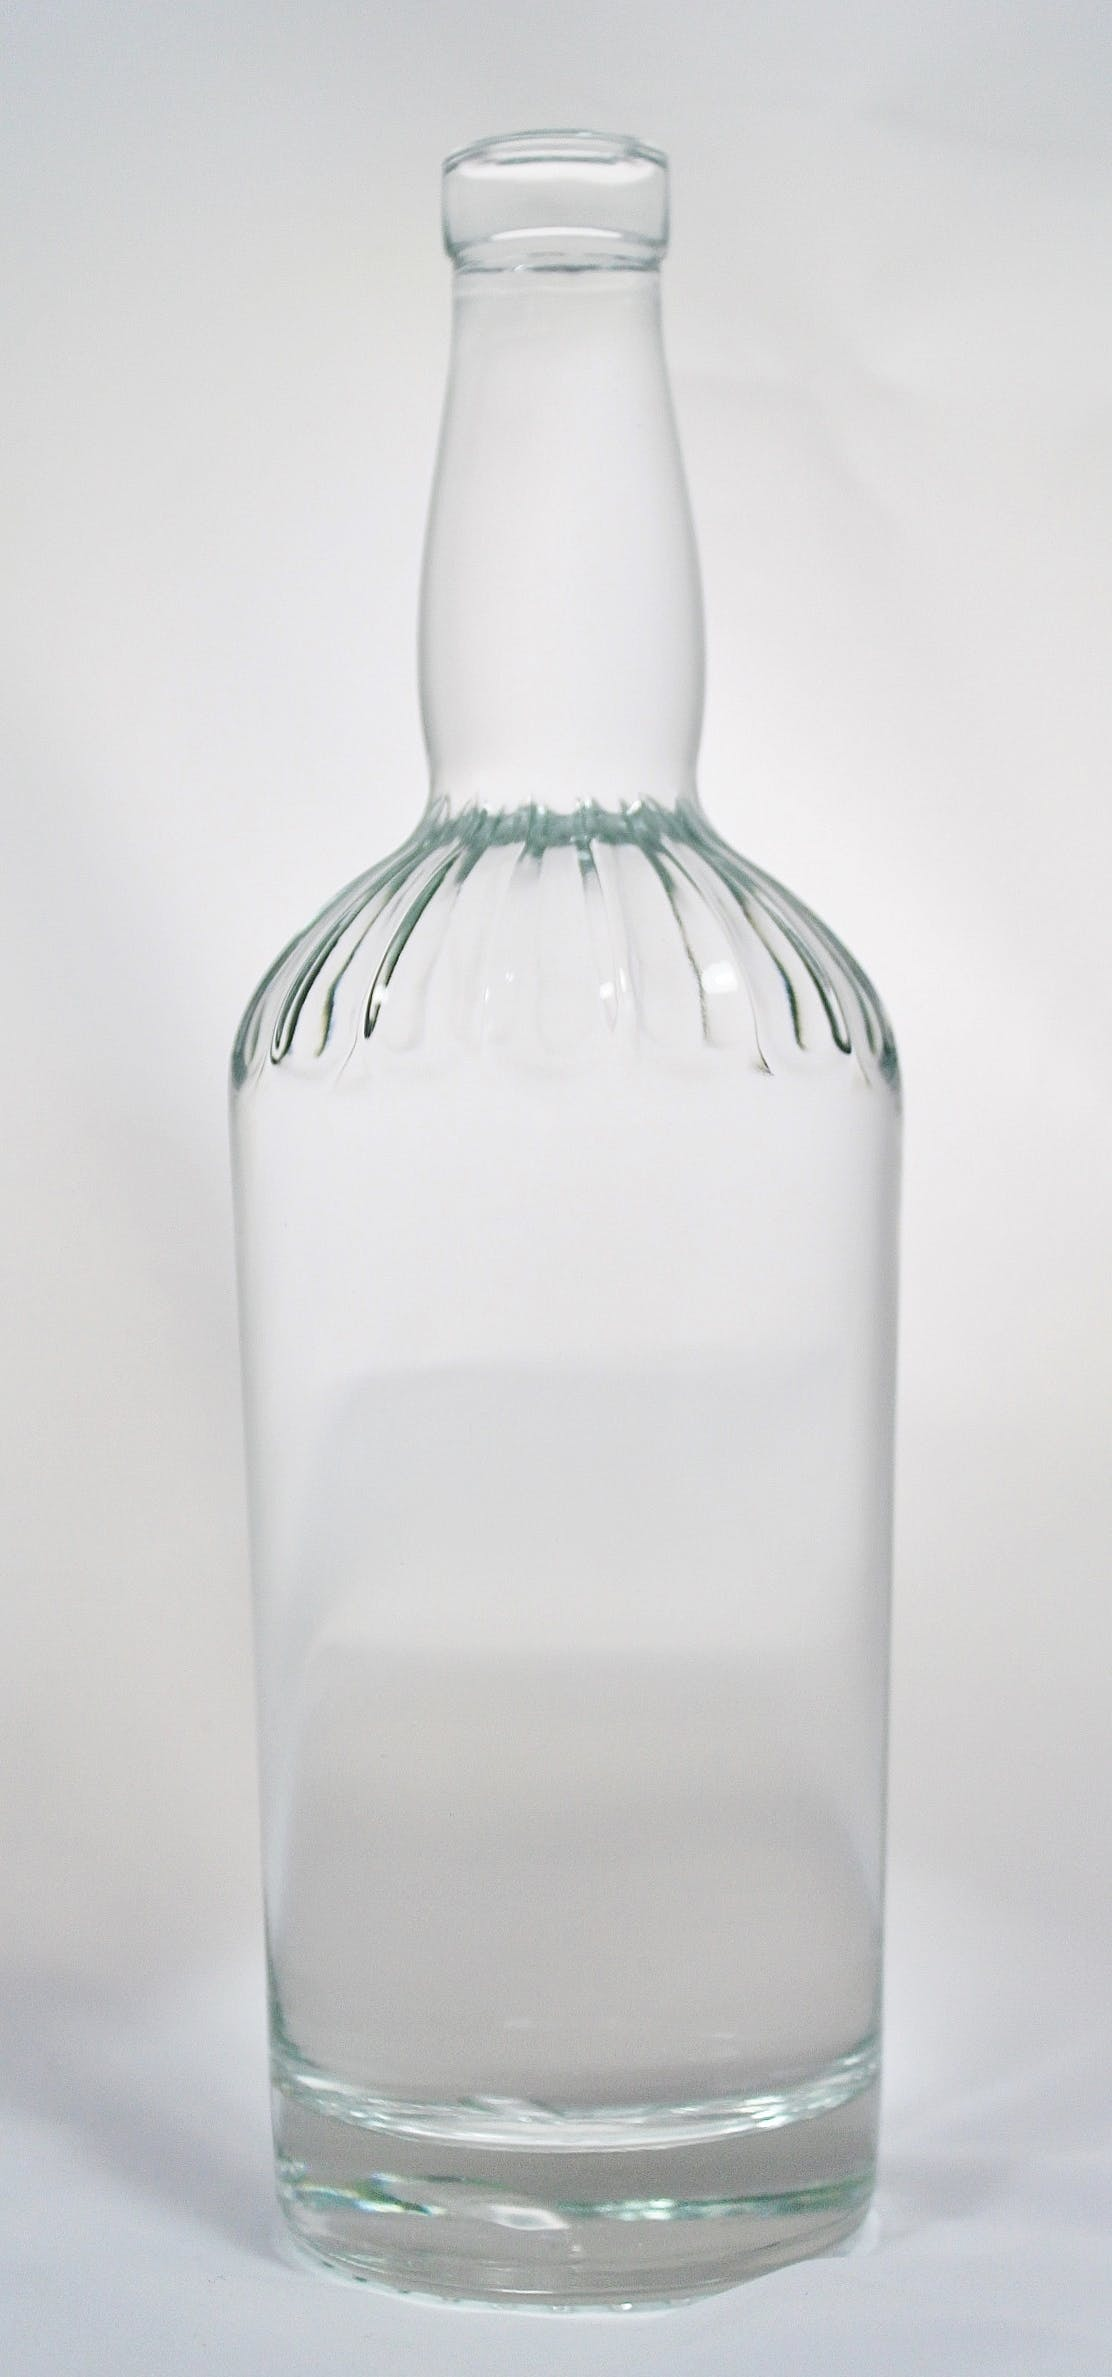 750ml Jimmy Lee Round Bar Top Liquor bottle sold by Wm. R. Hill & Company